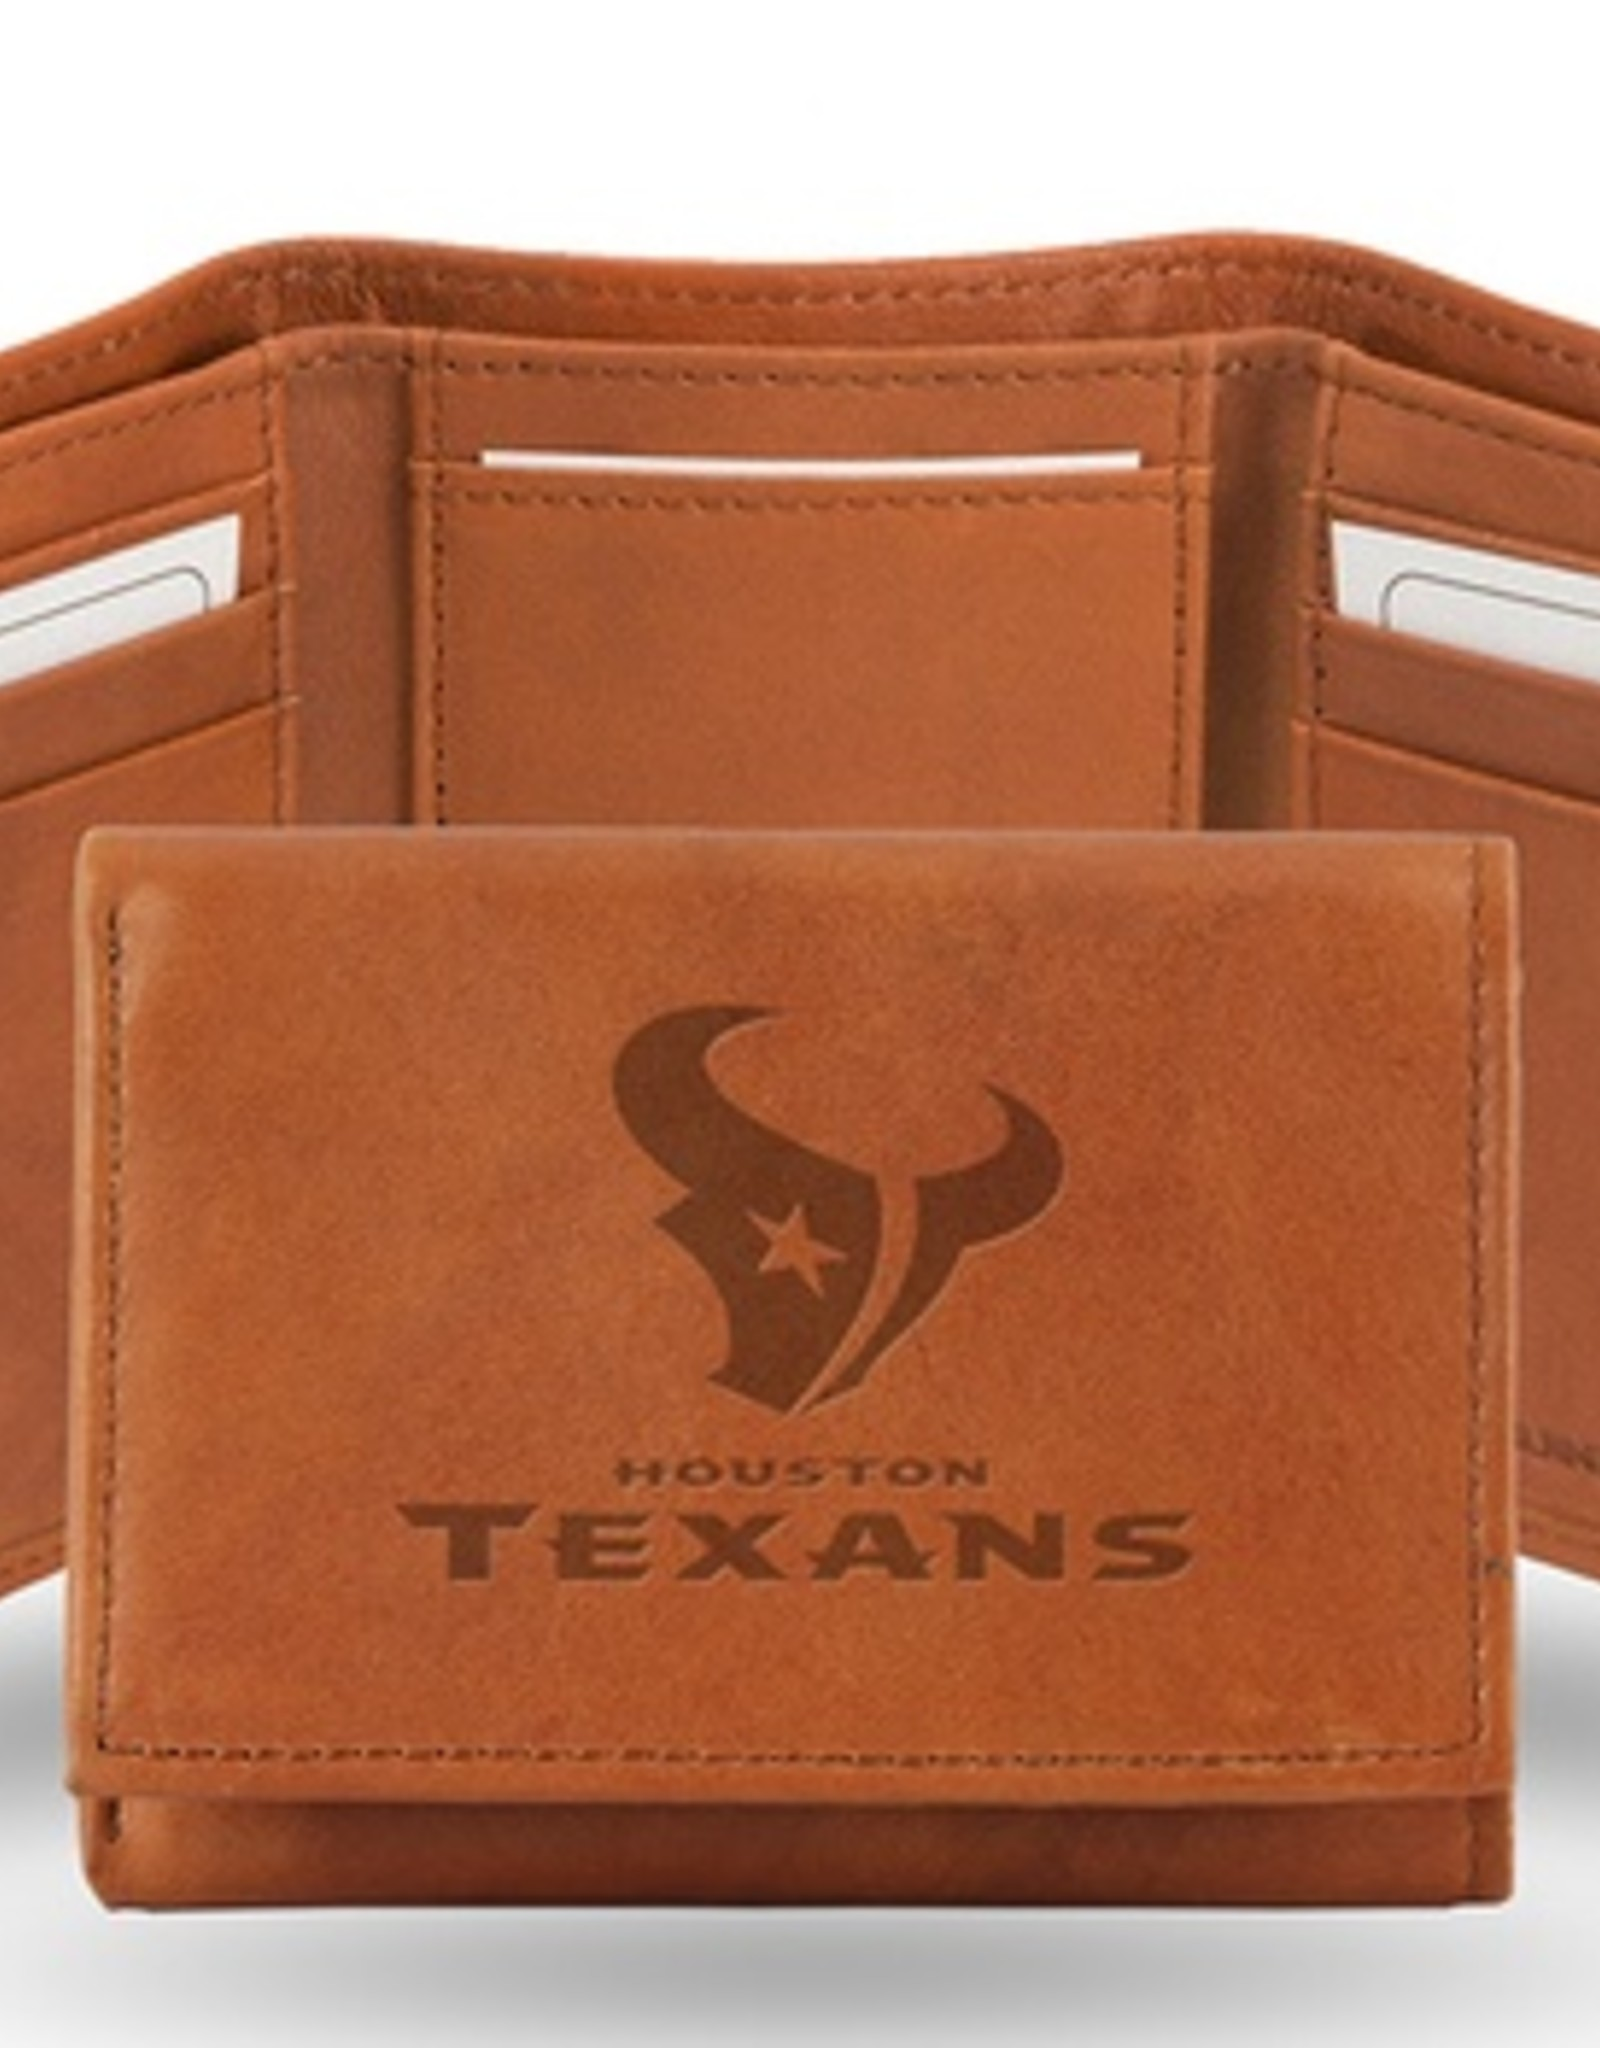 RICO INDUSTRIES Houston Texans Genuine Leather Vintage Trifold Wallet